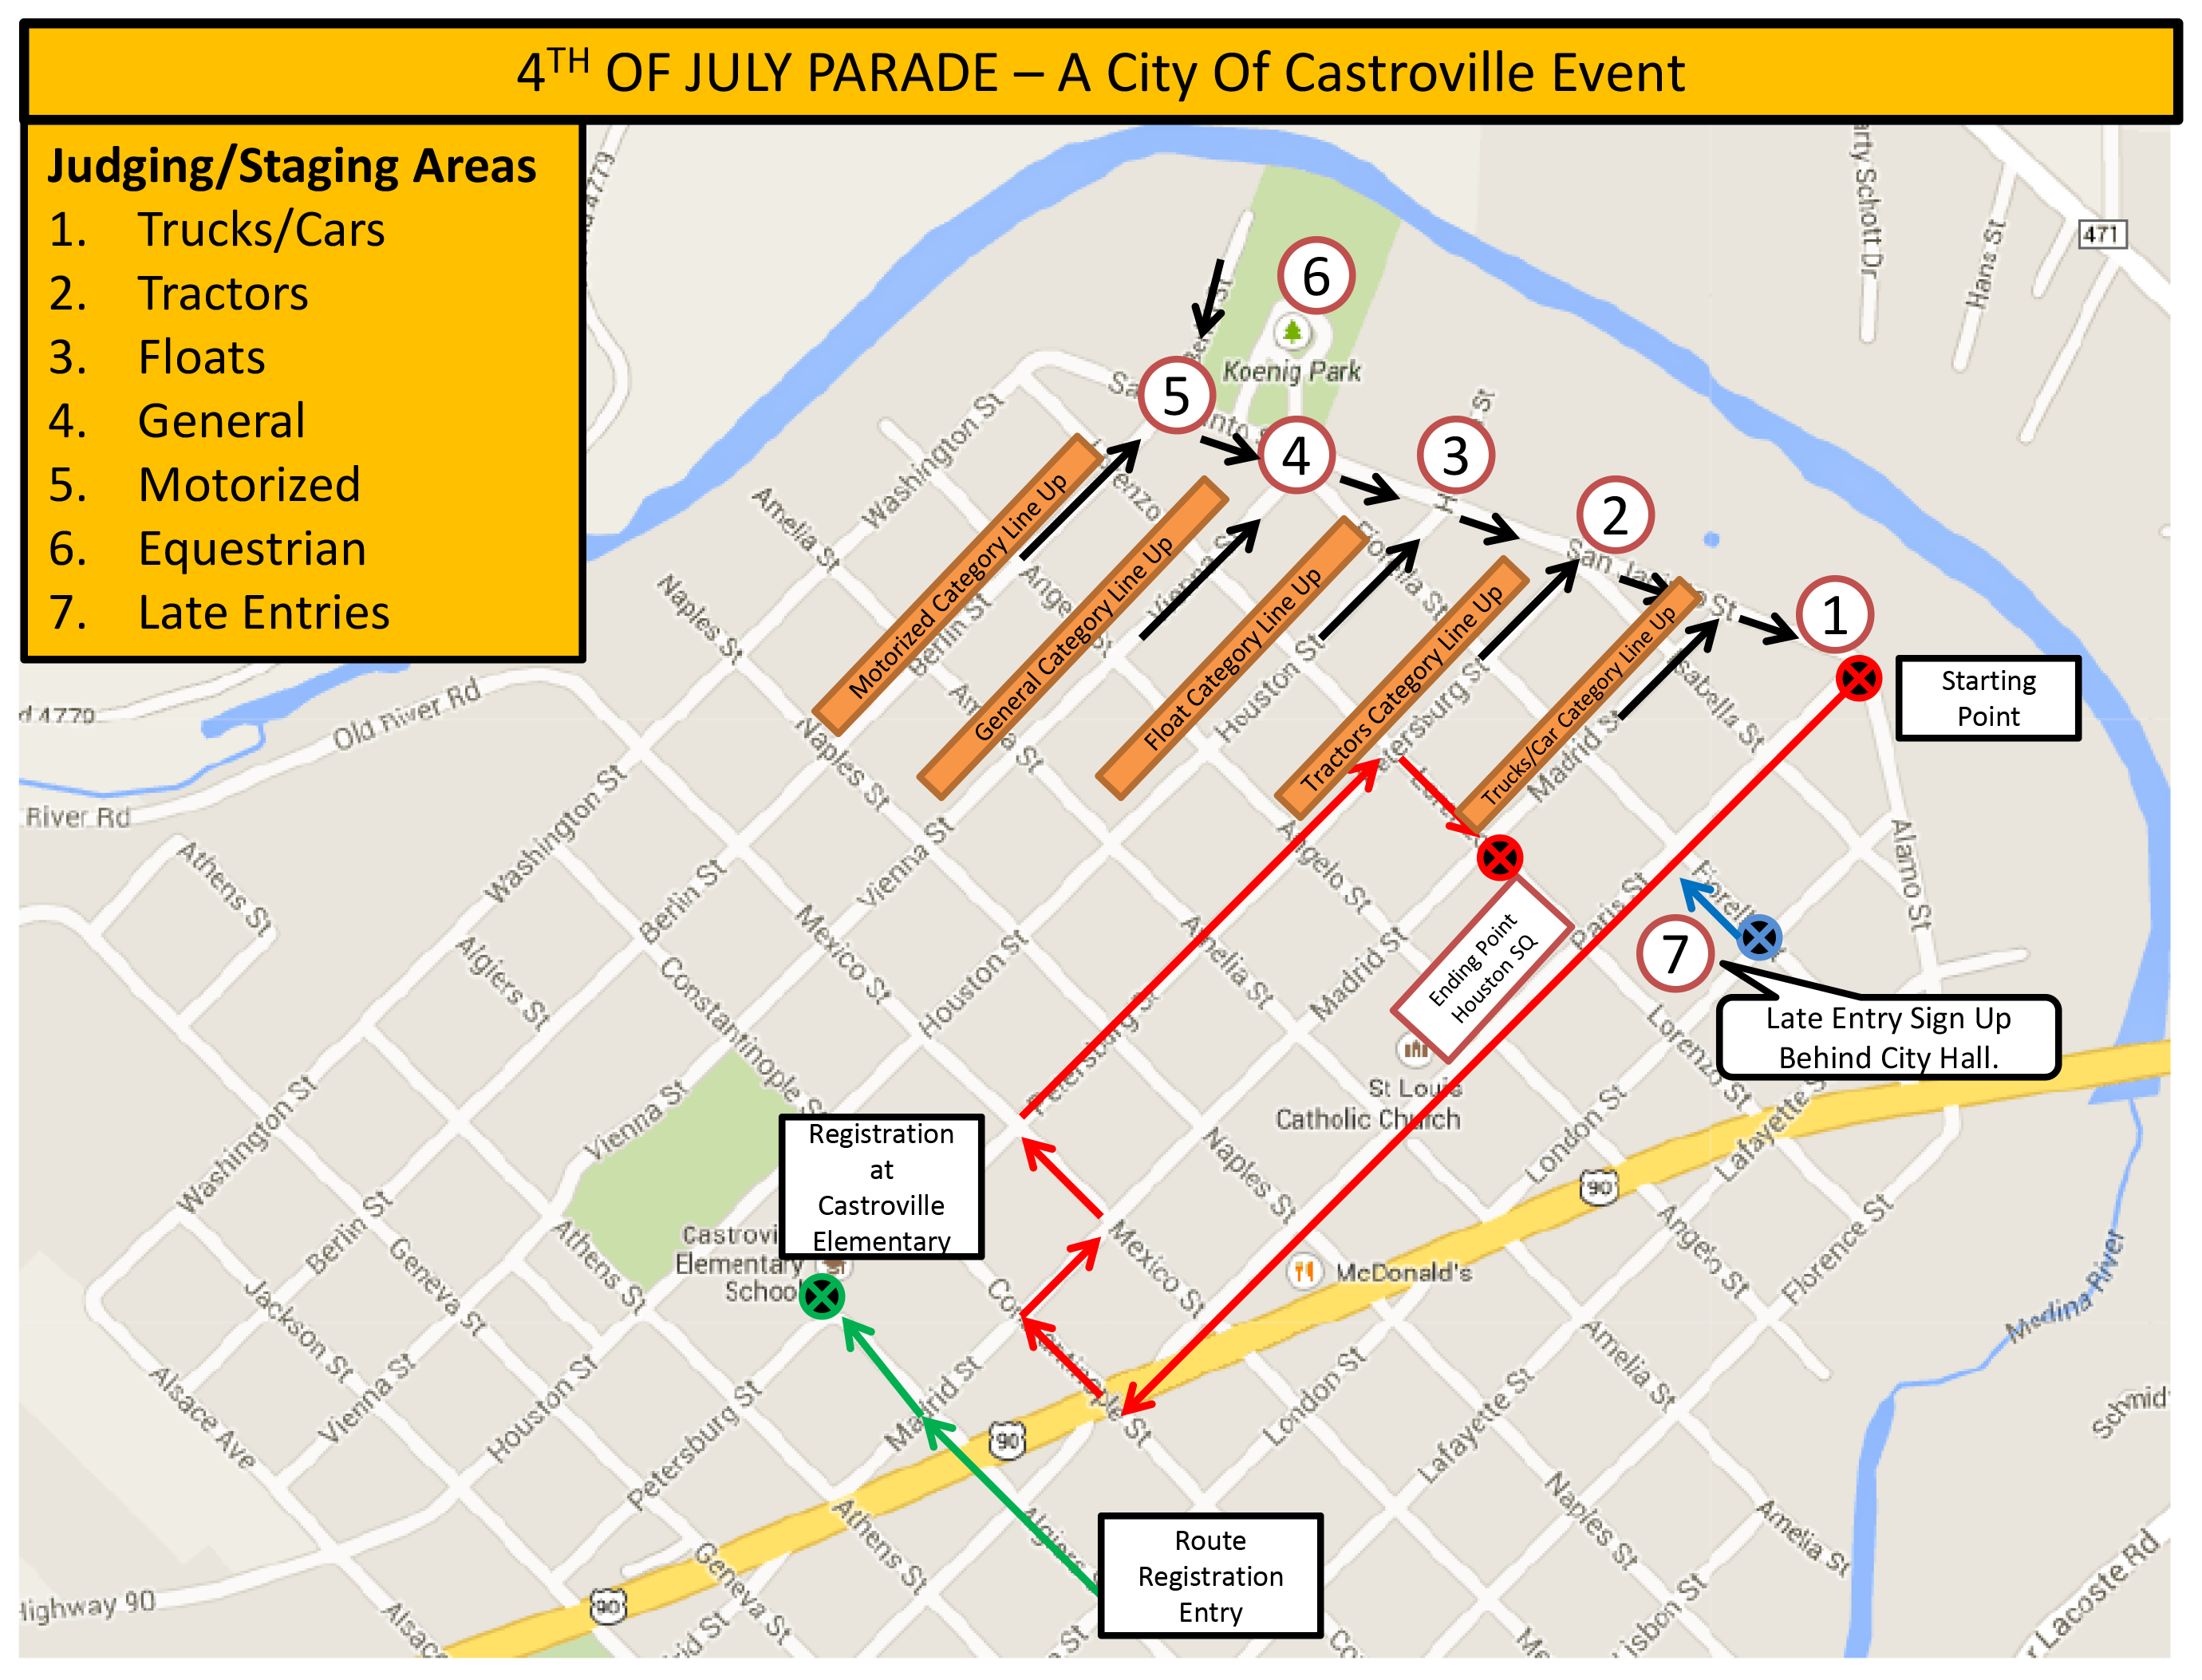 parade-judging-and-stagging-areas-2015